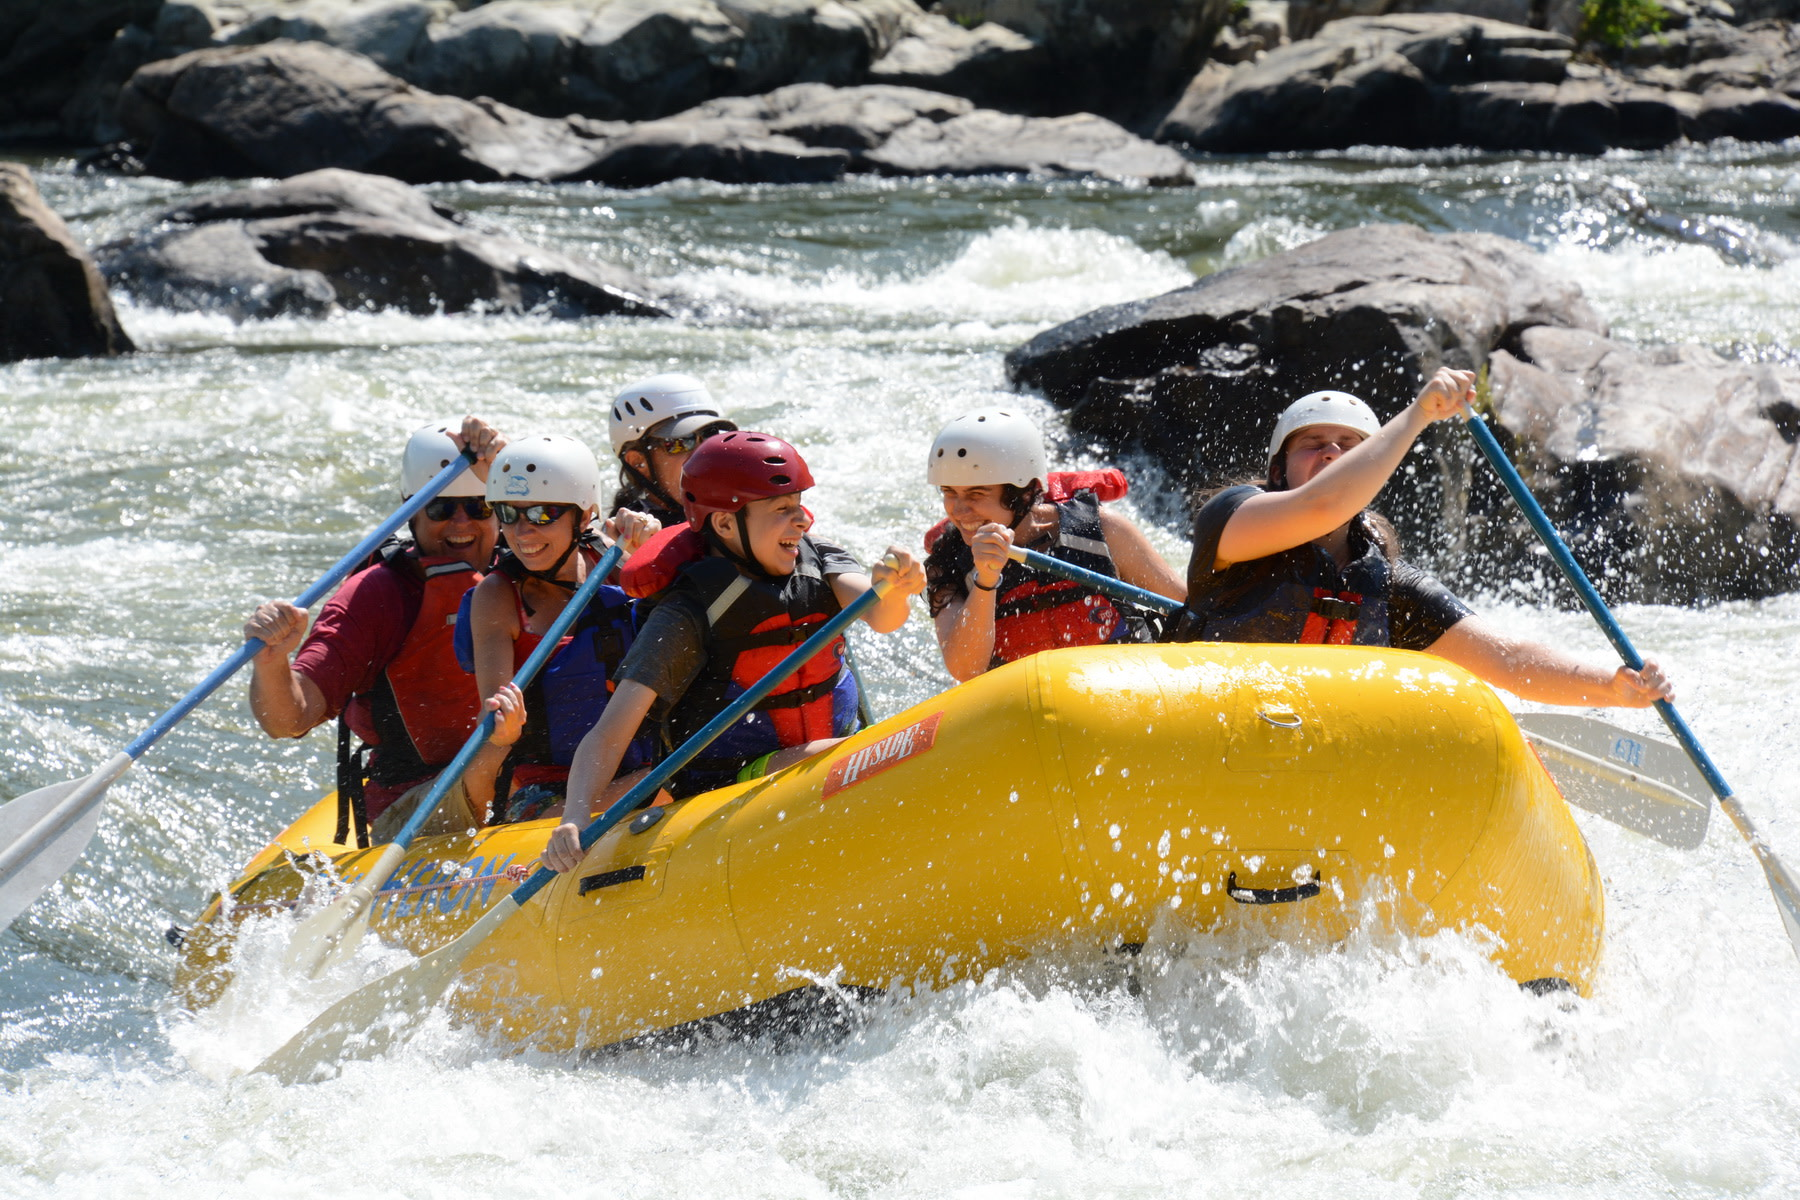 Blue Heron Whitewater Rafting Adventure